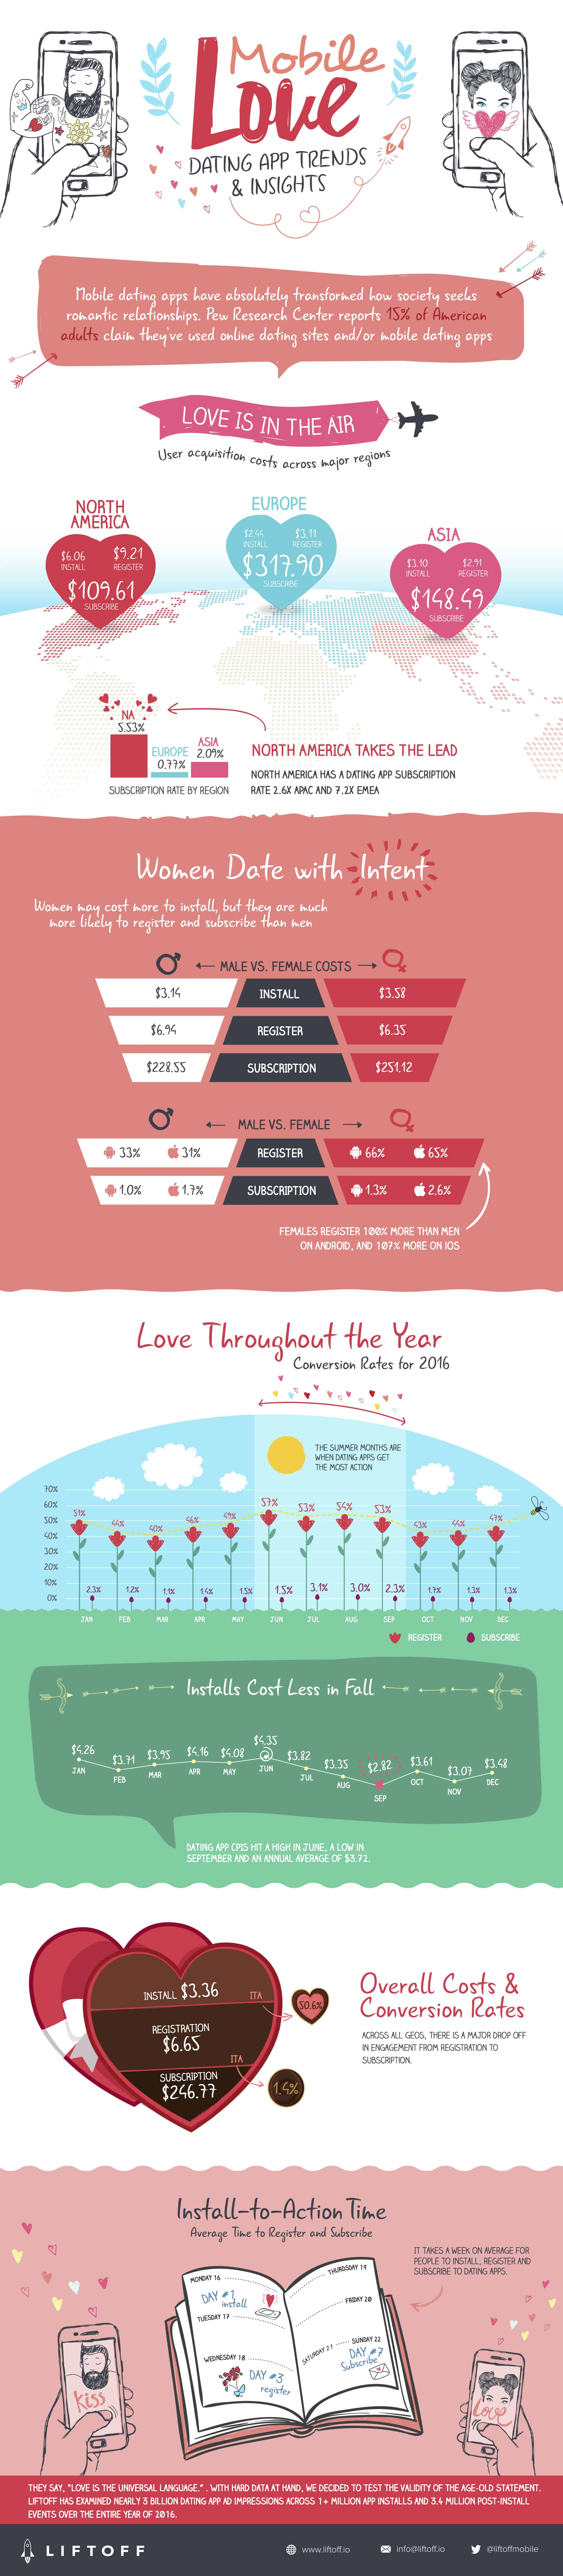 Mobile Online-Dating-Apps